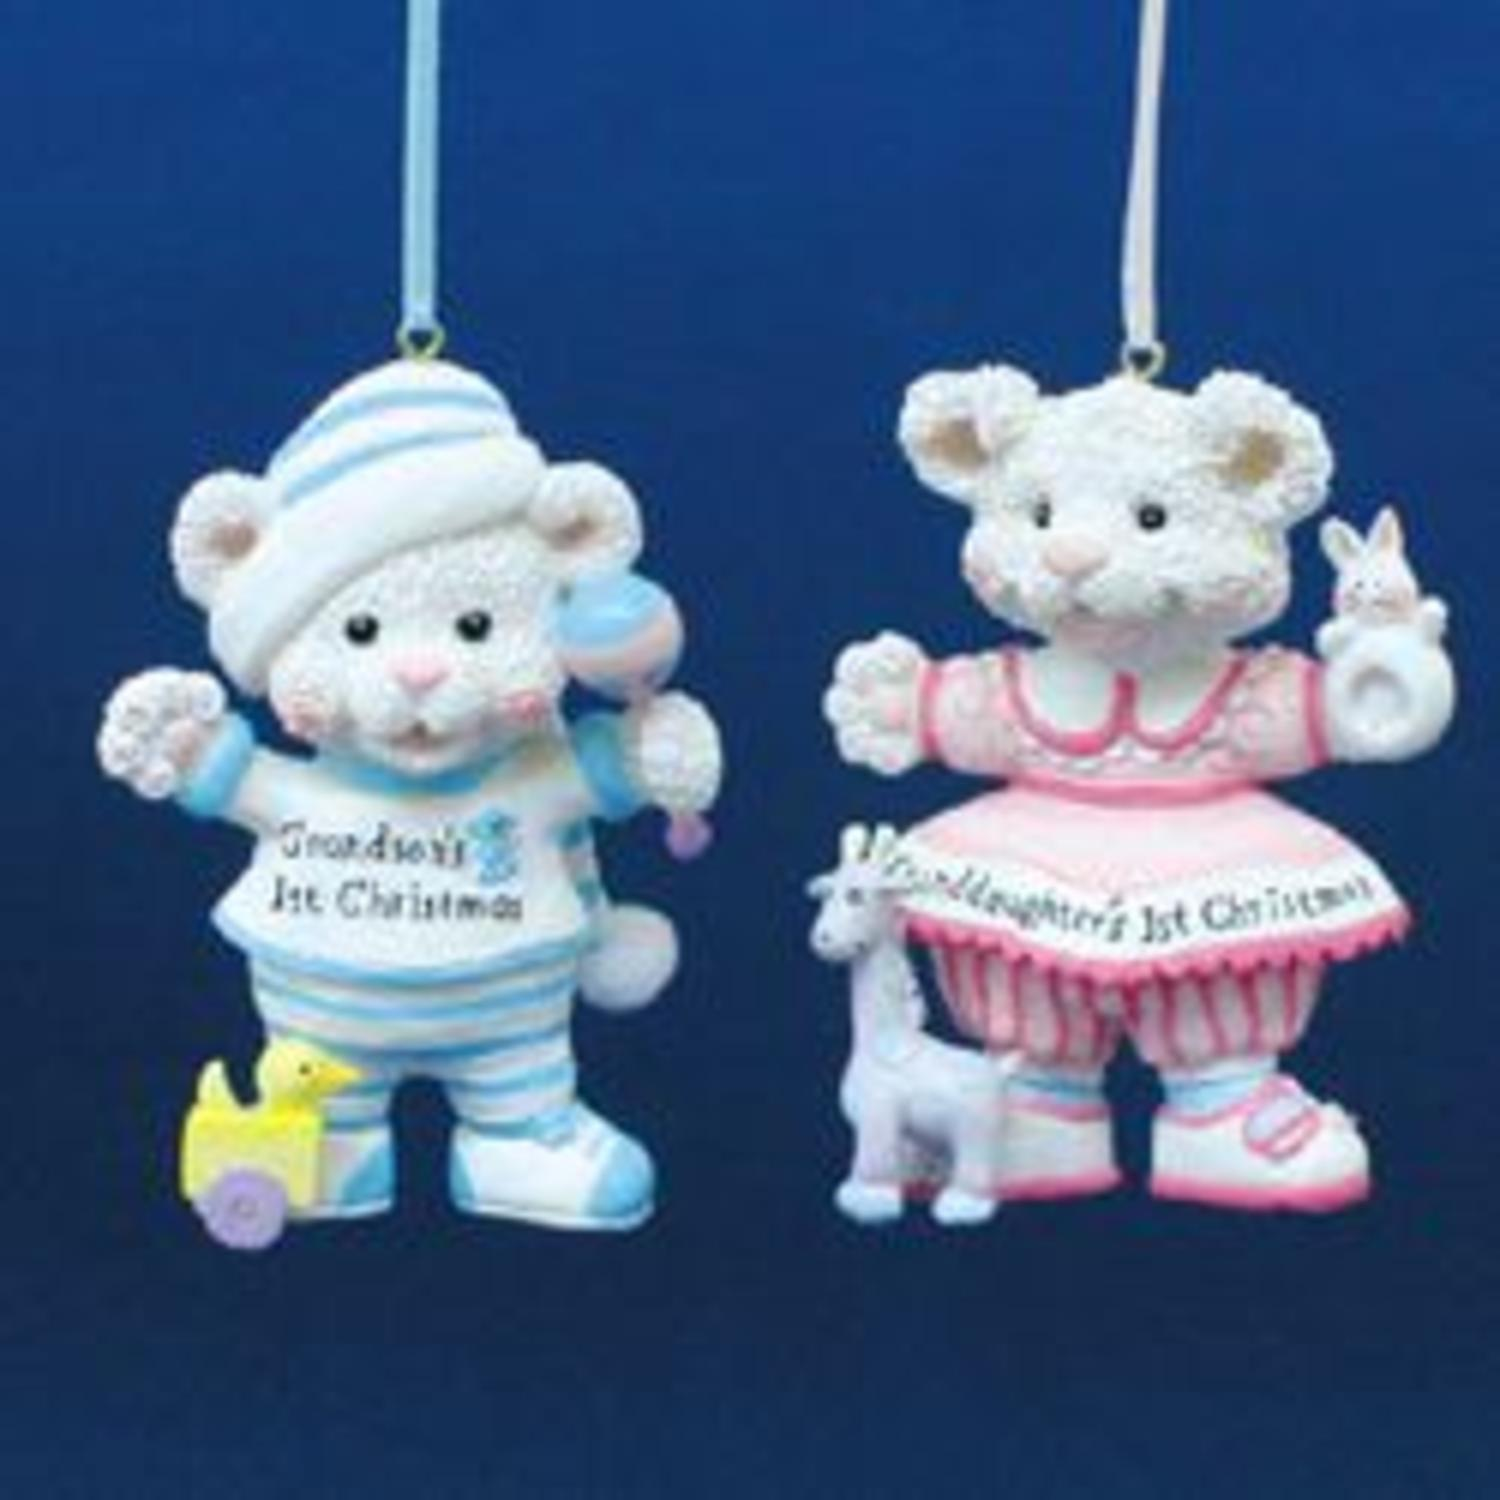 Club Pack of 12 Grandchild's 1st Christmas Cub Ornaments for Personalization 4""